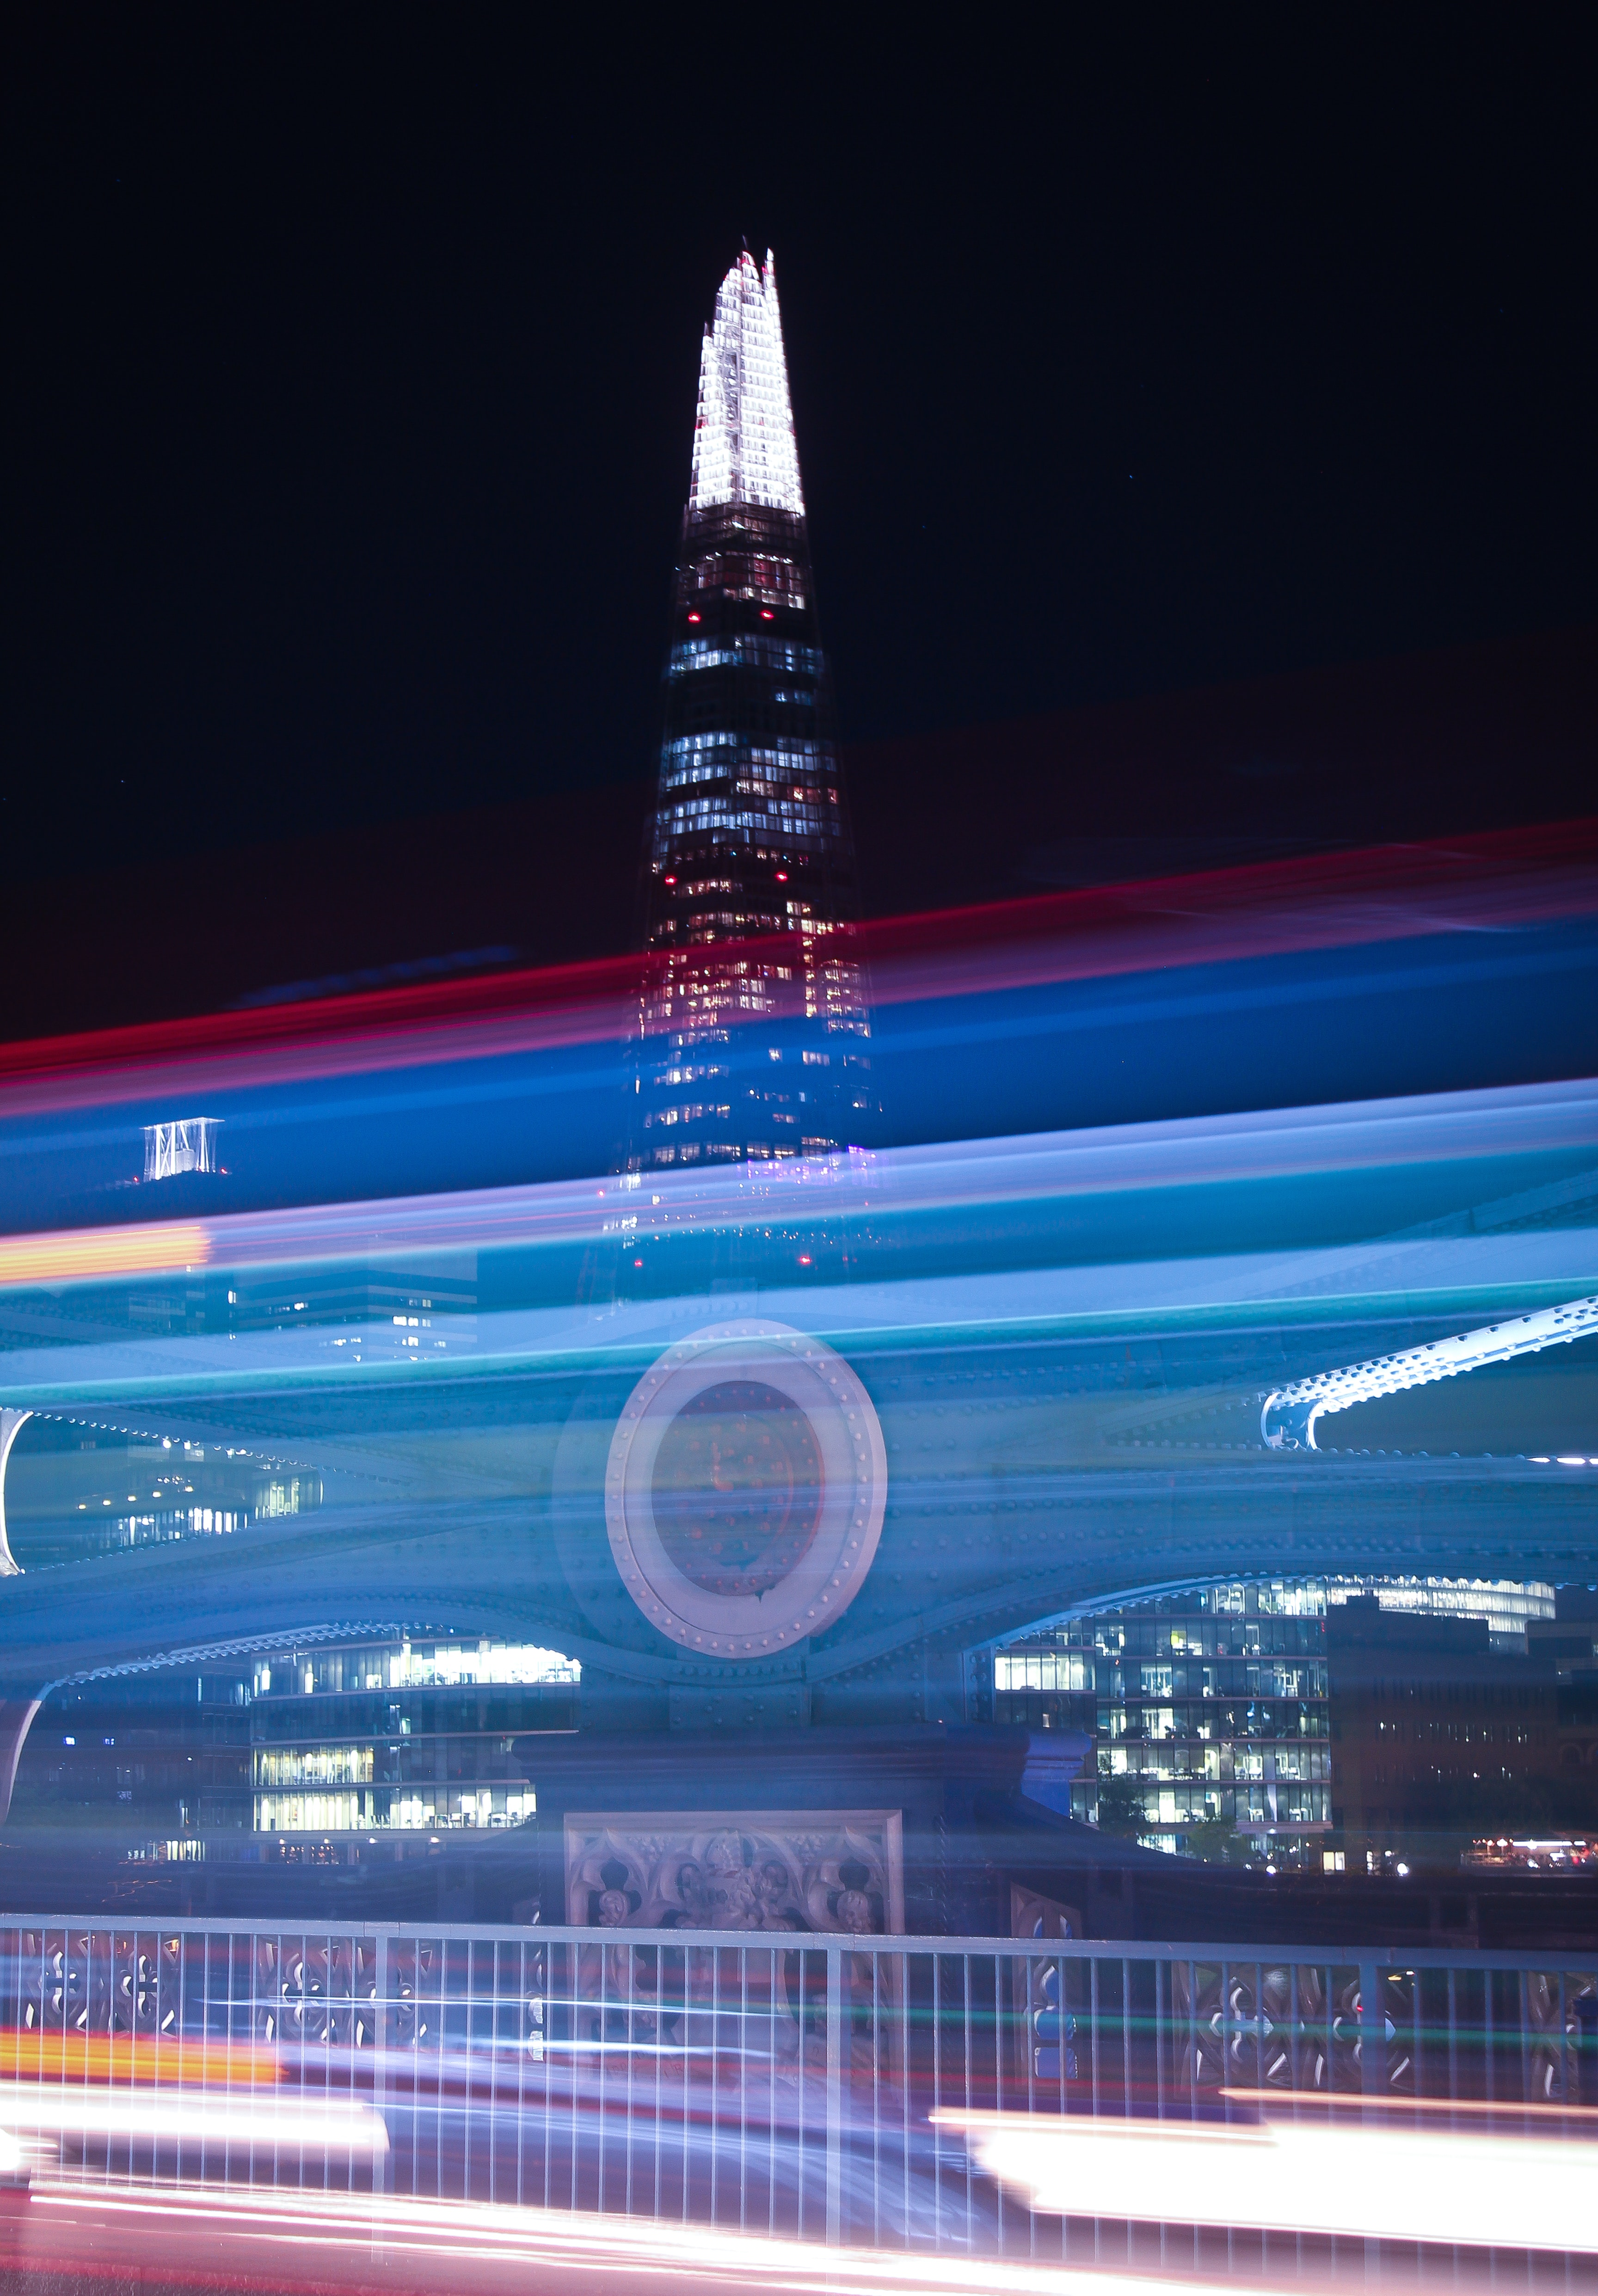 Photo of the shard building during night time